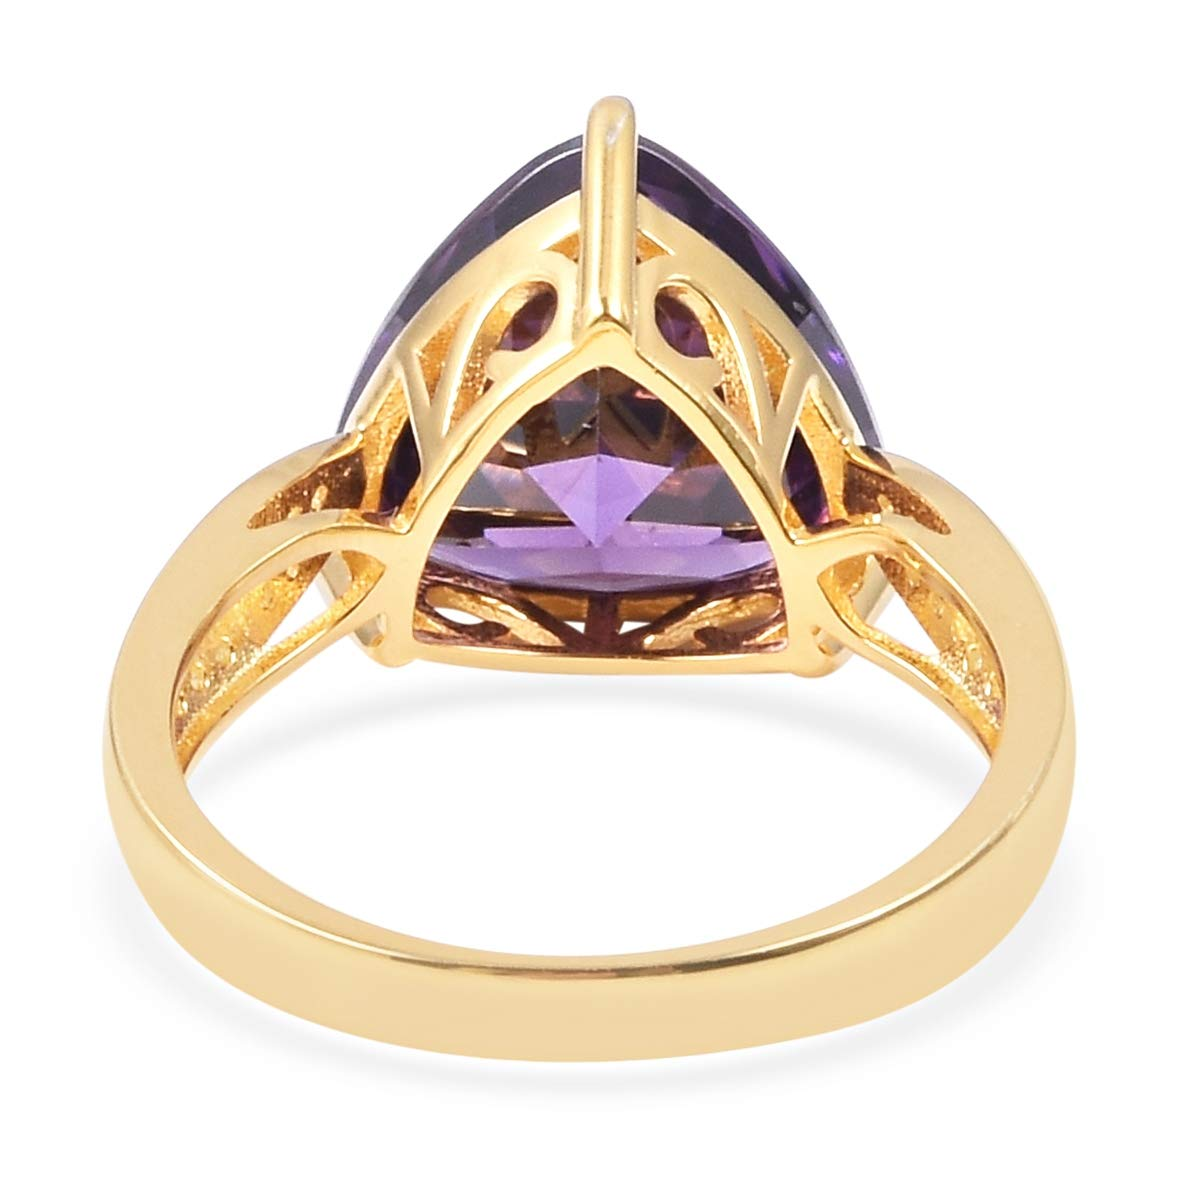 Yellow Gold Plated 925 Sterling Silver Statement Ring White Cubic Zirconia CZ Gift Jewelry for Women Size 7 Ct 6